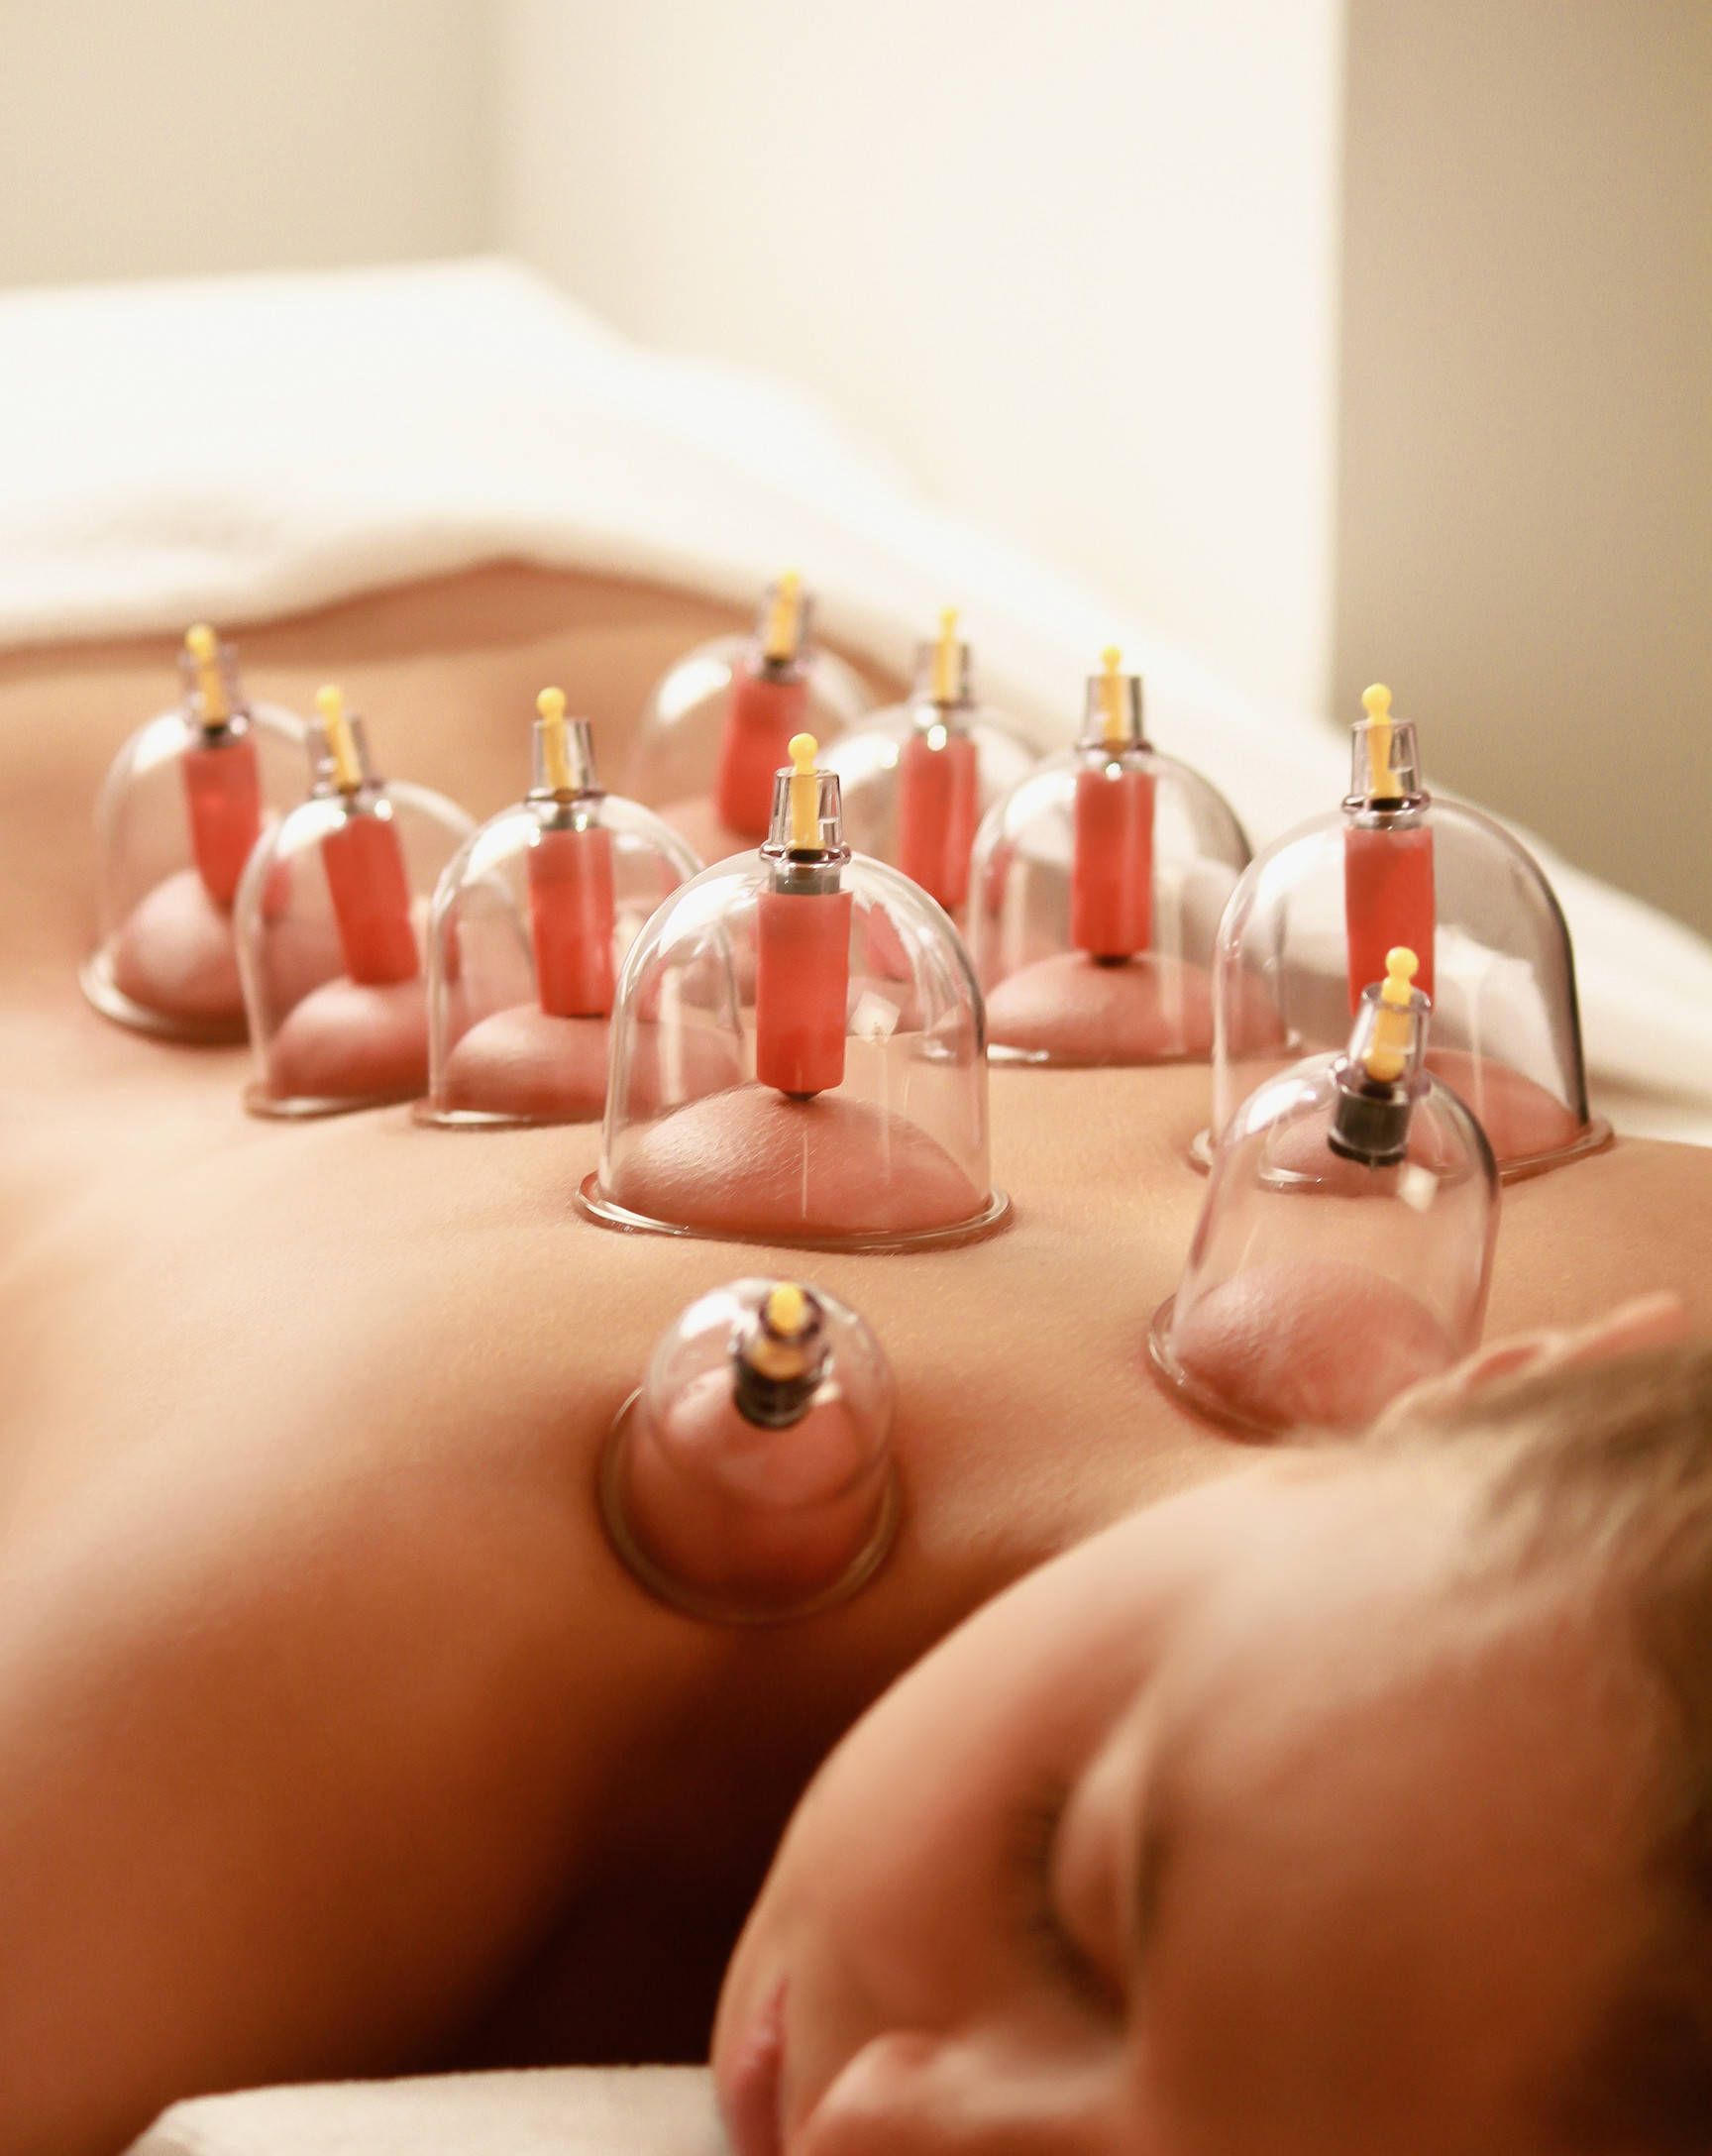 Cupping Ventousotherapy